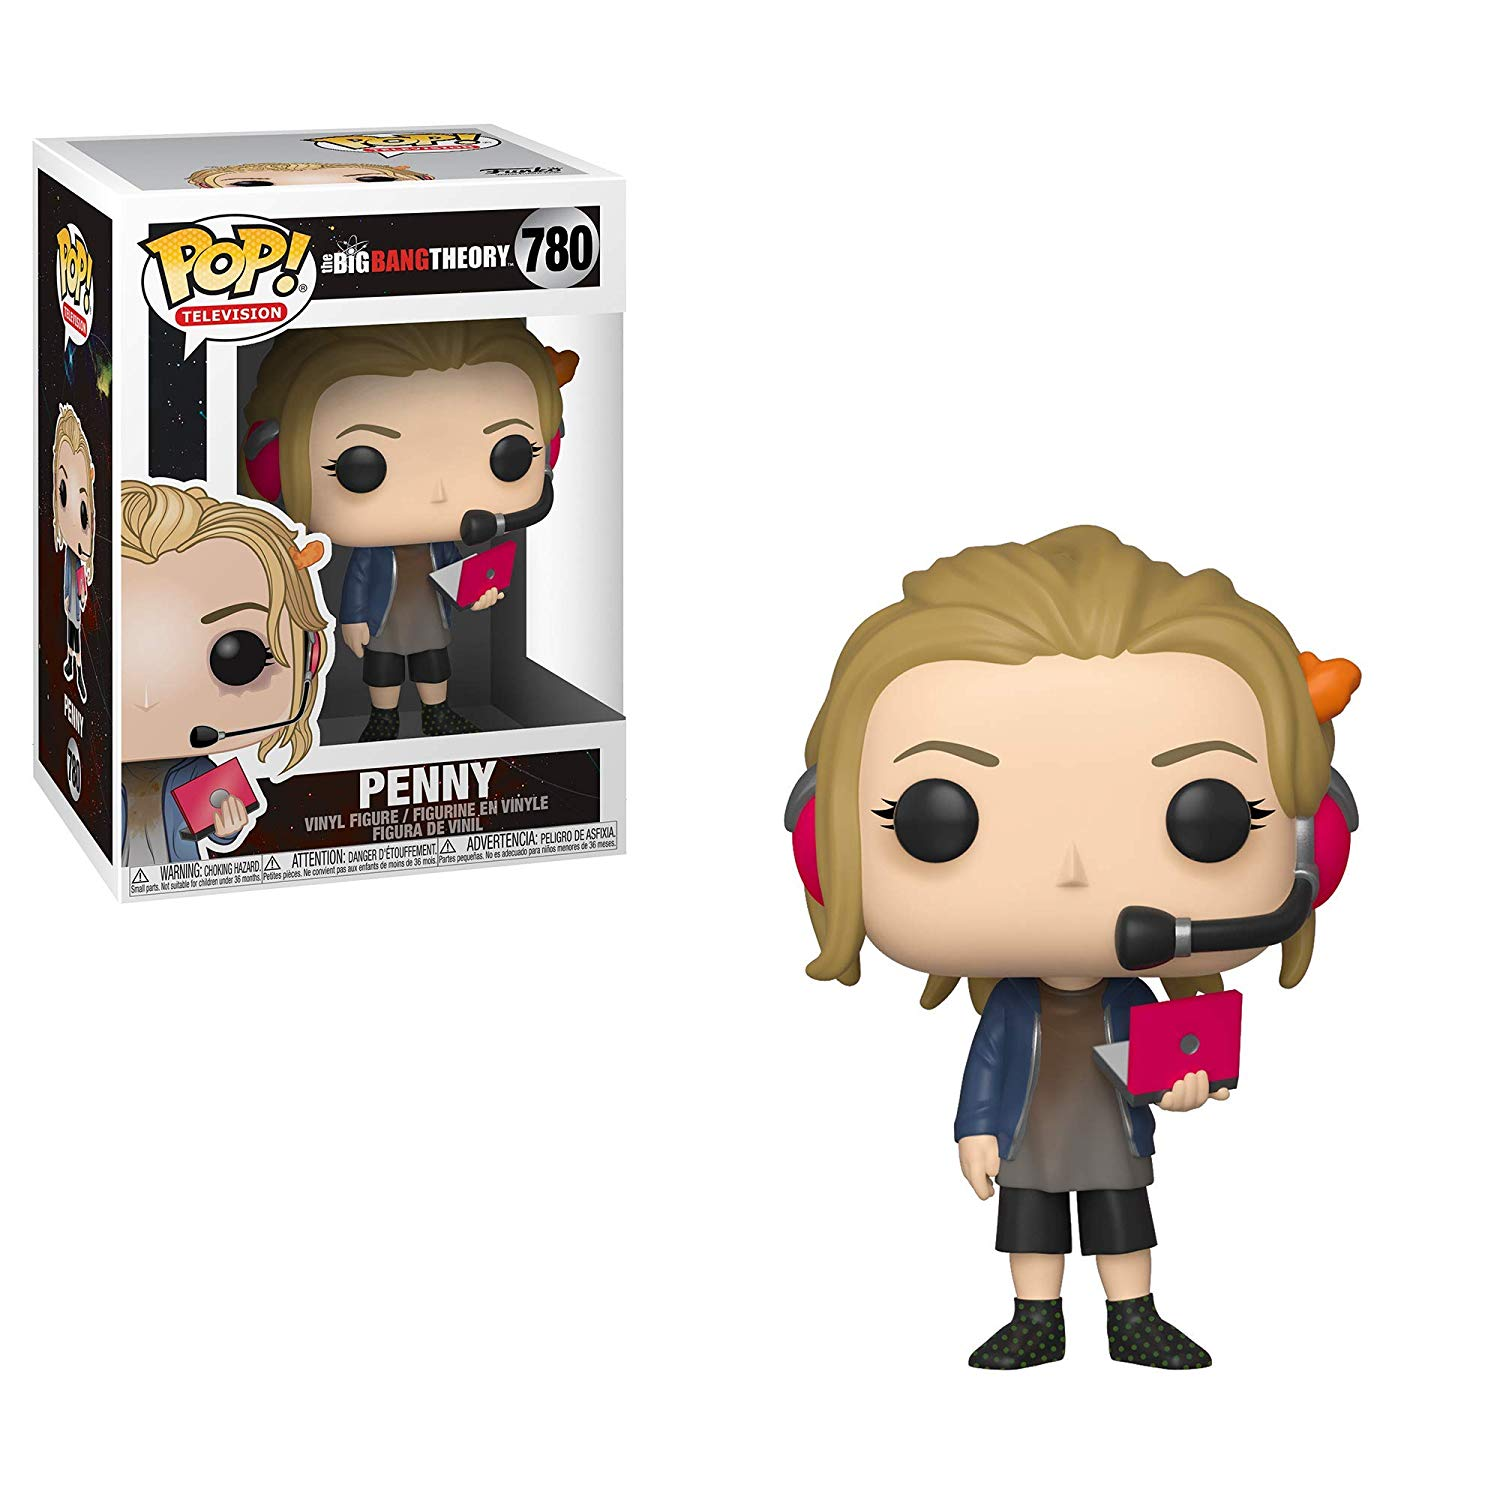 Pop! Television The Big Bang Theory Vinyl Figure Penny #780